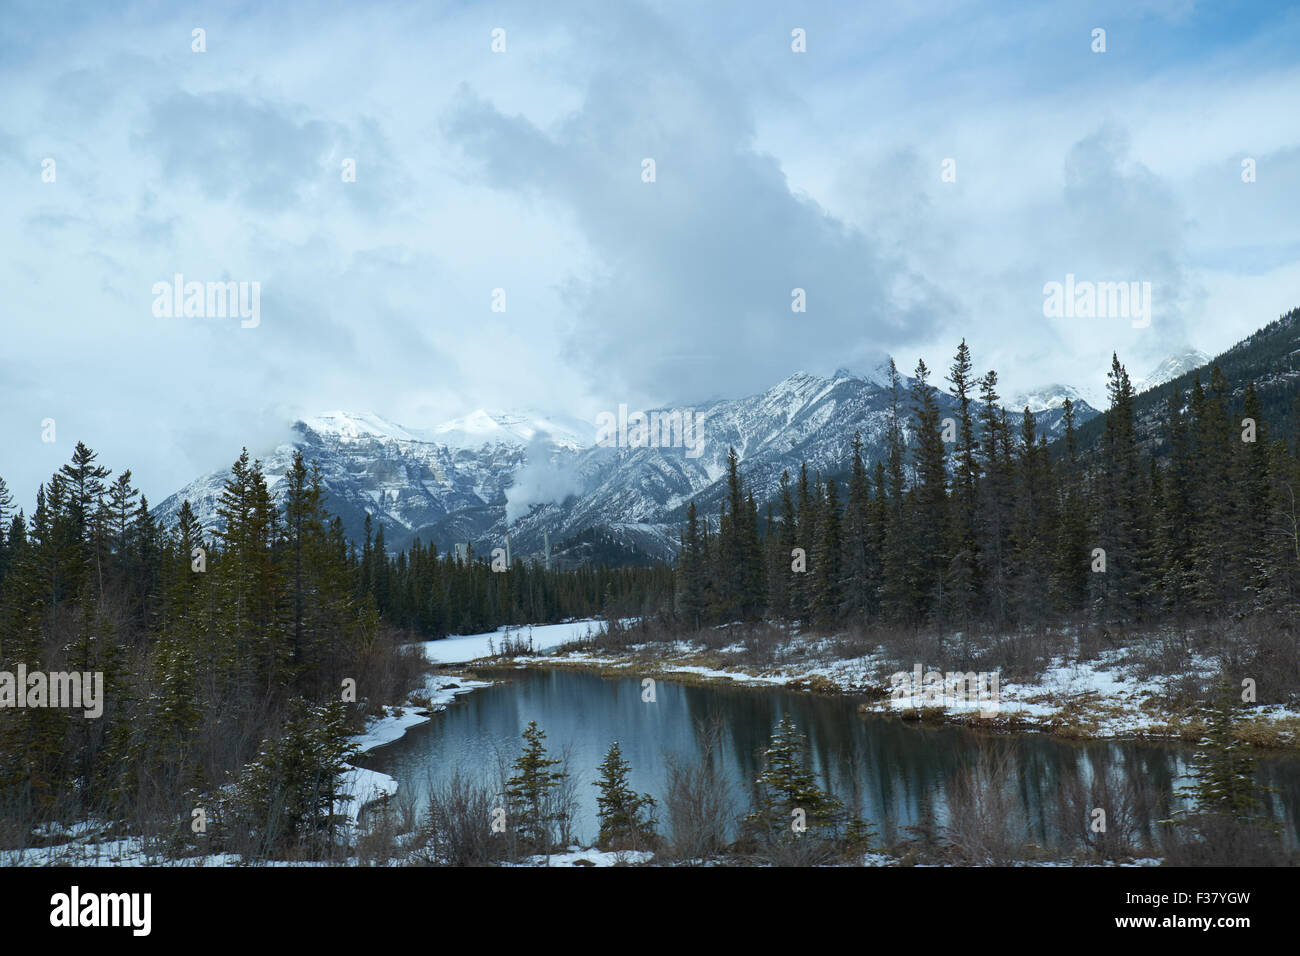 Canadian winter landscape with the Rockies Mountains and a lake with reflections - Stock Image